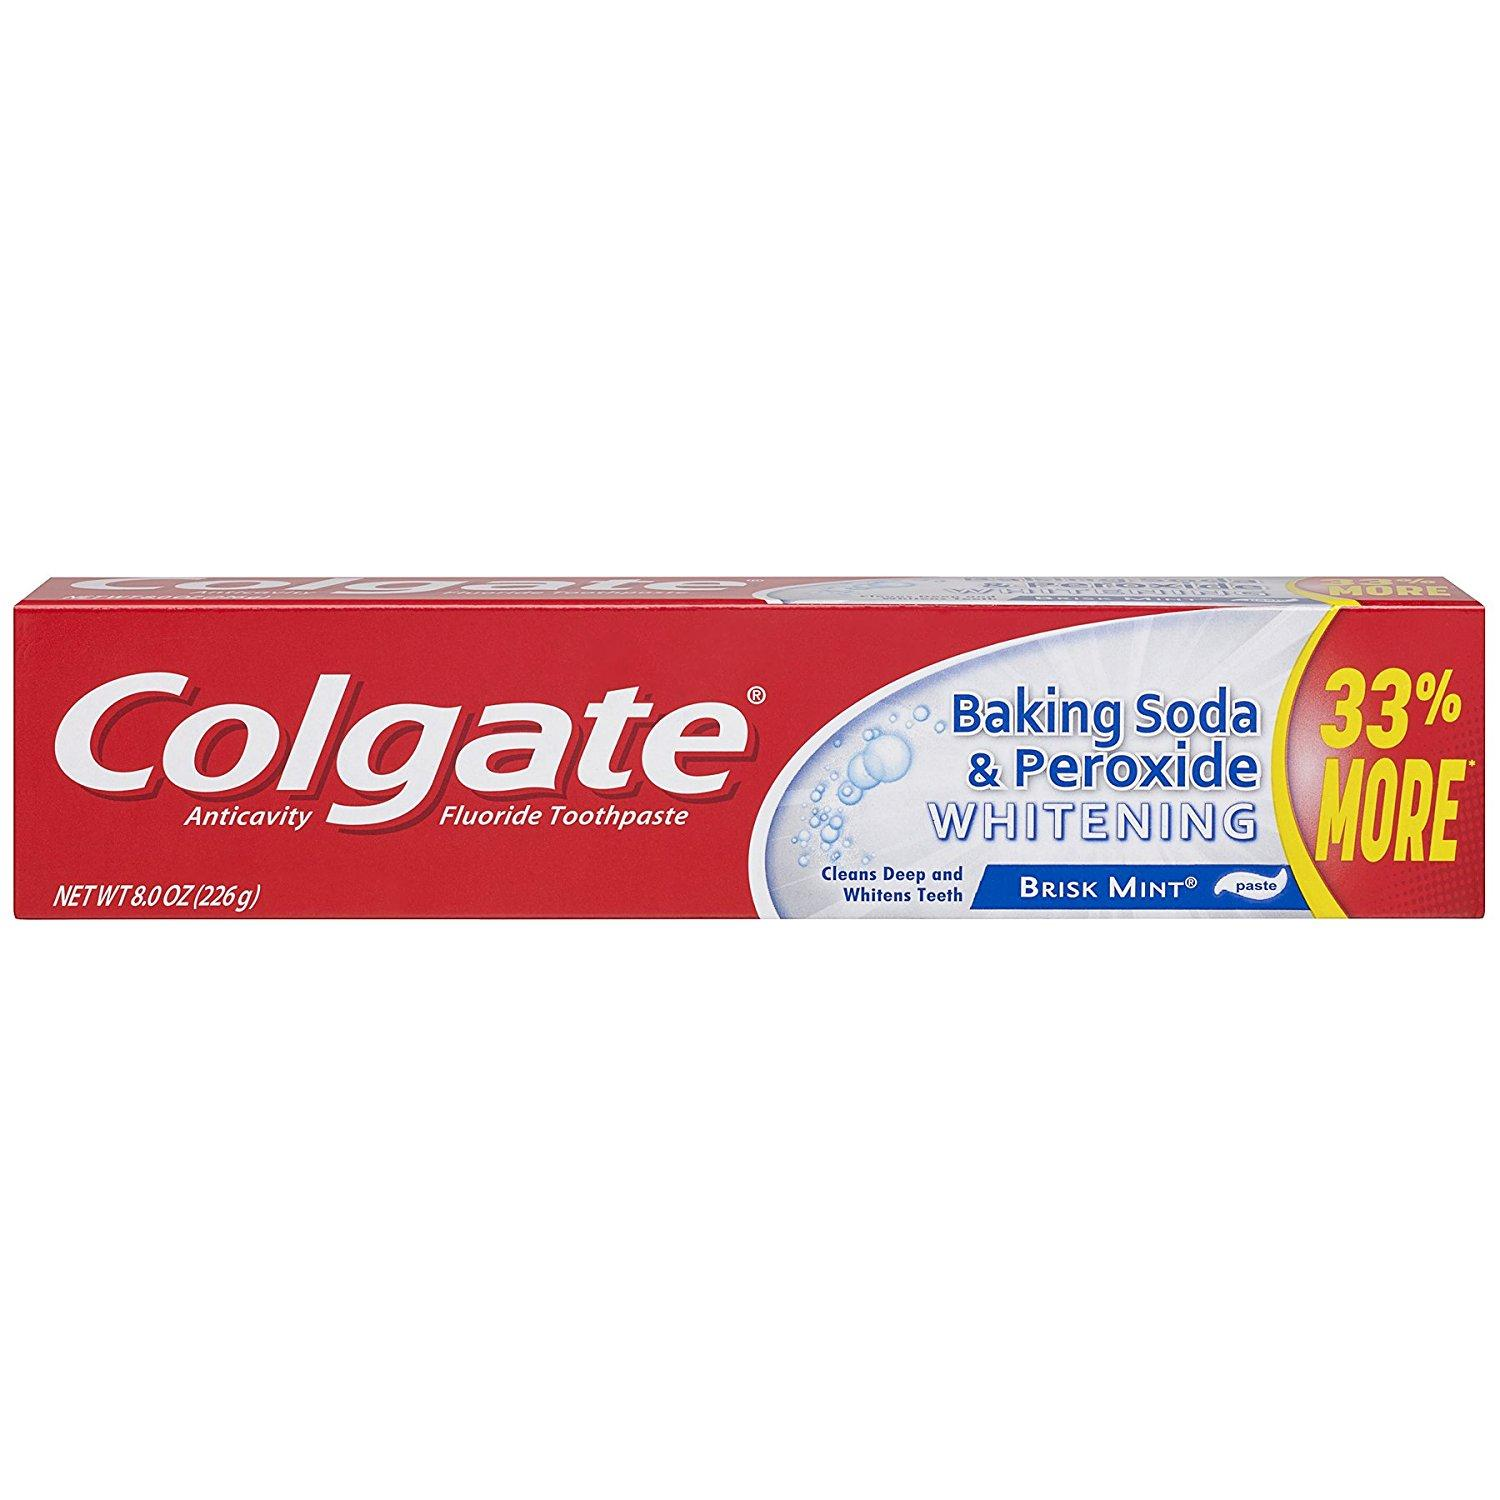 6 Colgate Baking Soda and Peroxide Whitening Toothpaste for $9.42 Shipped